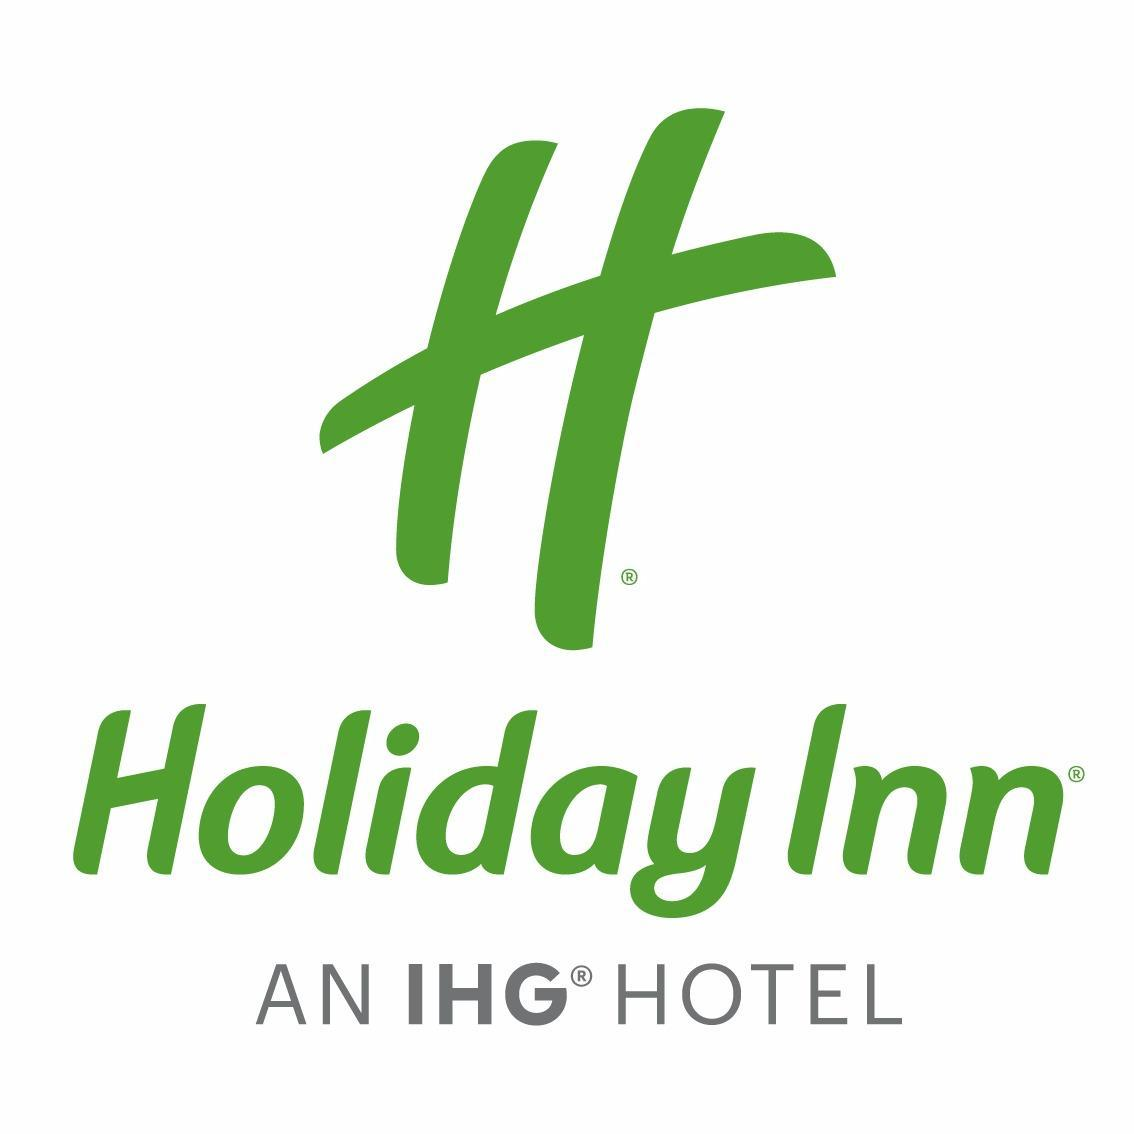 Holiday Inn Resort Pensacola Beach Gulf Front - Pensacola Beach, FL - Hotels & Motels